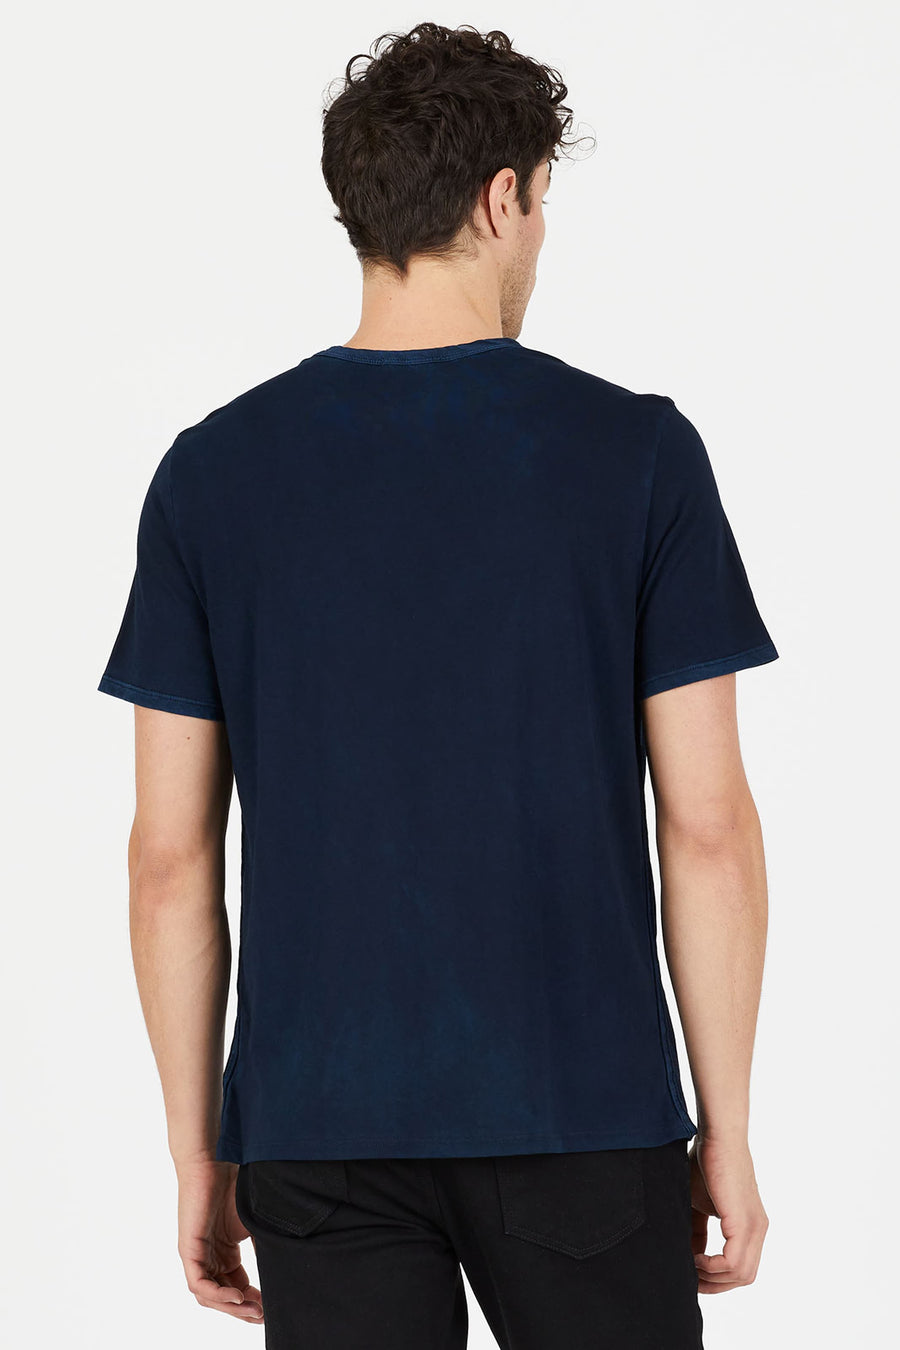 Vintage Navy Supima Cotton Essential Tee by Cotton Citizen